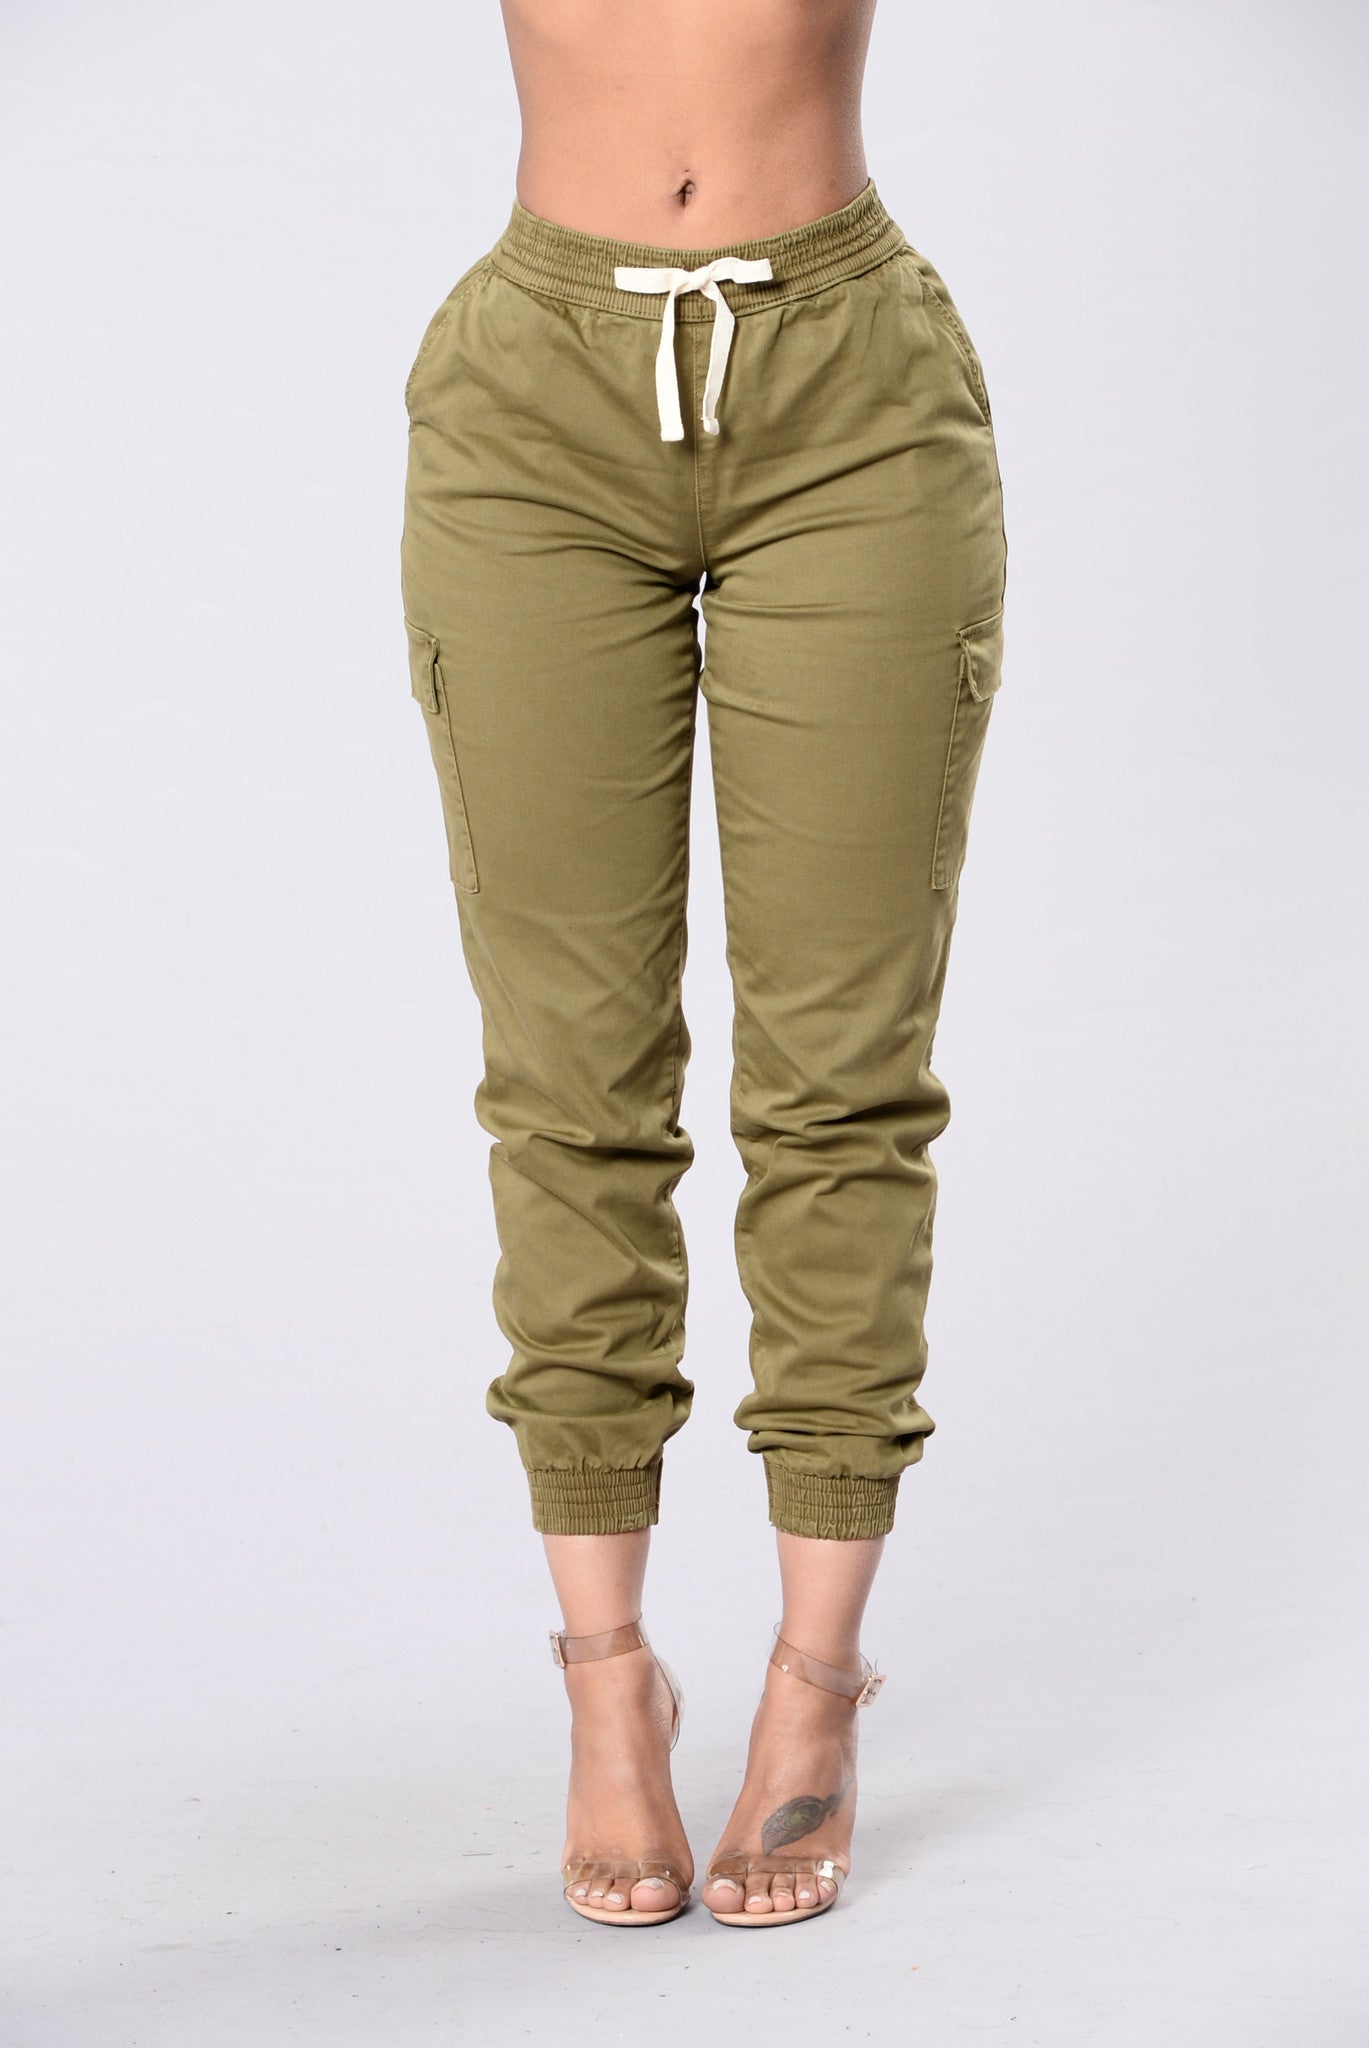 b1d614837e6 Gotta Keep Going Joggers - Olive